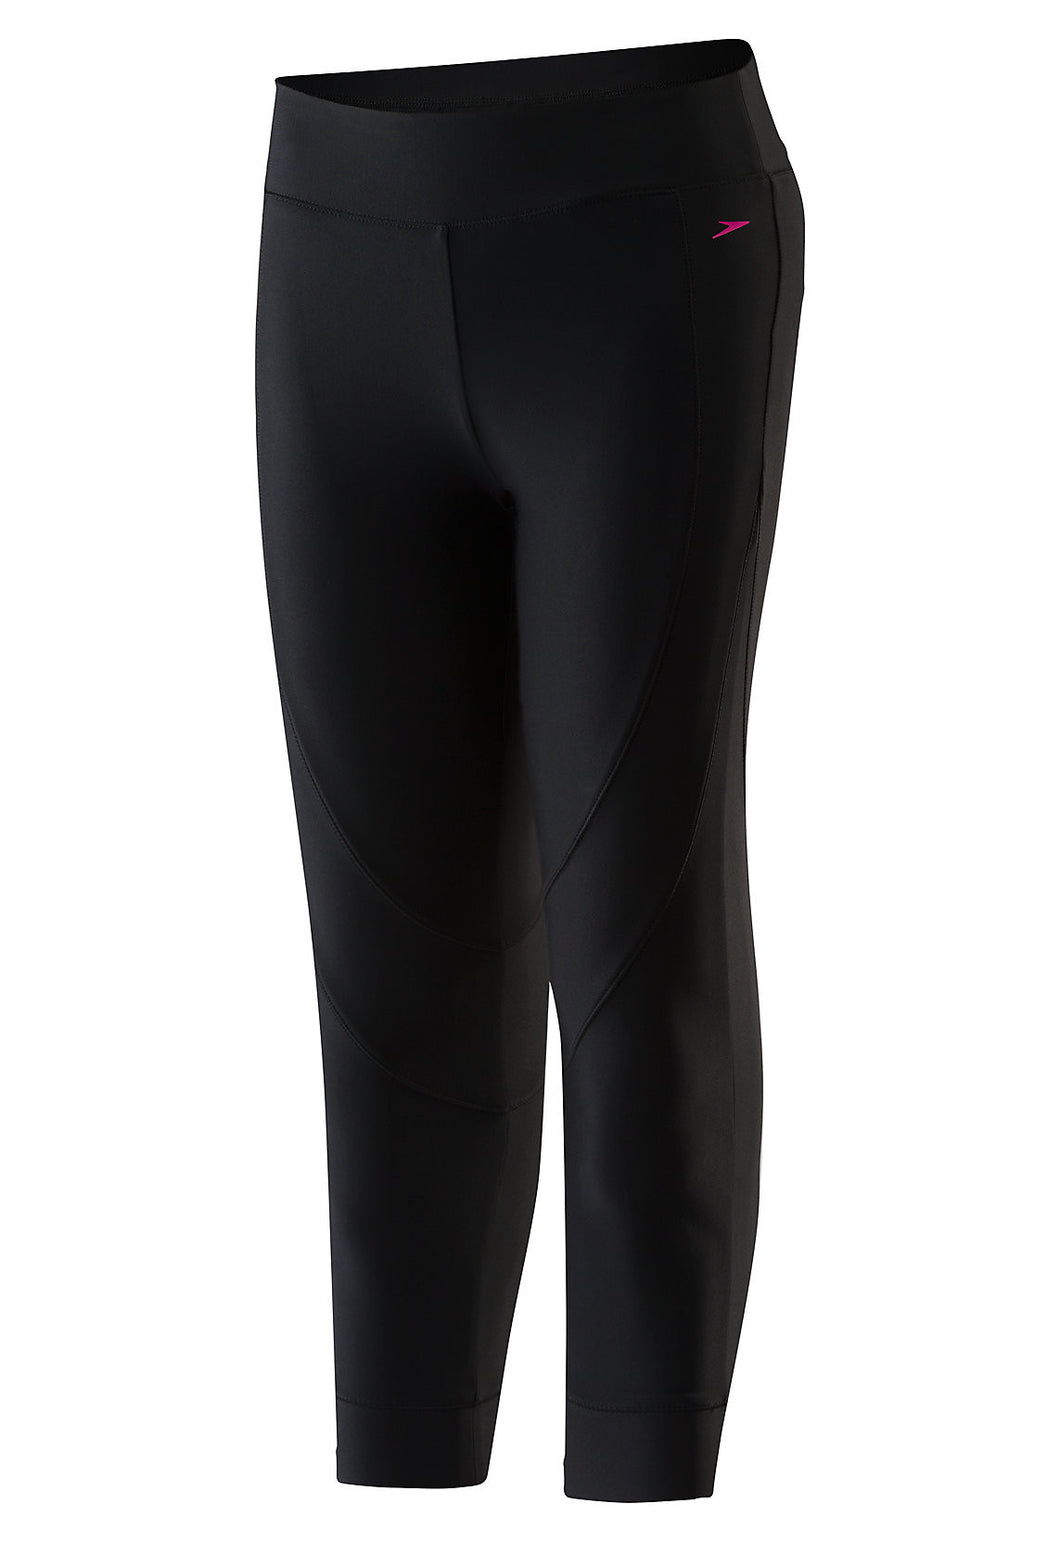 Speedo Women's Leggings